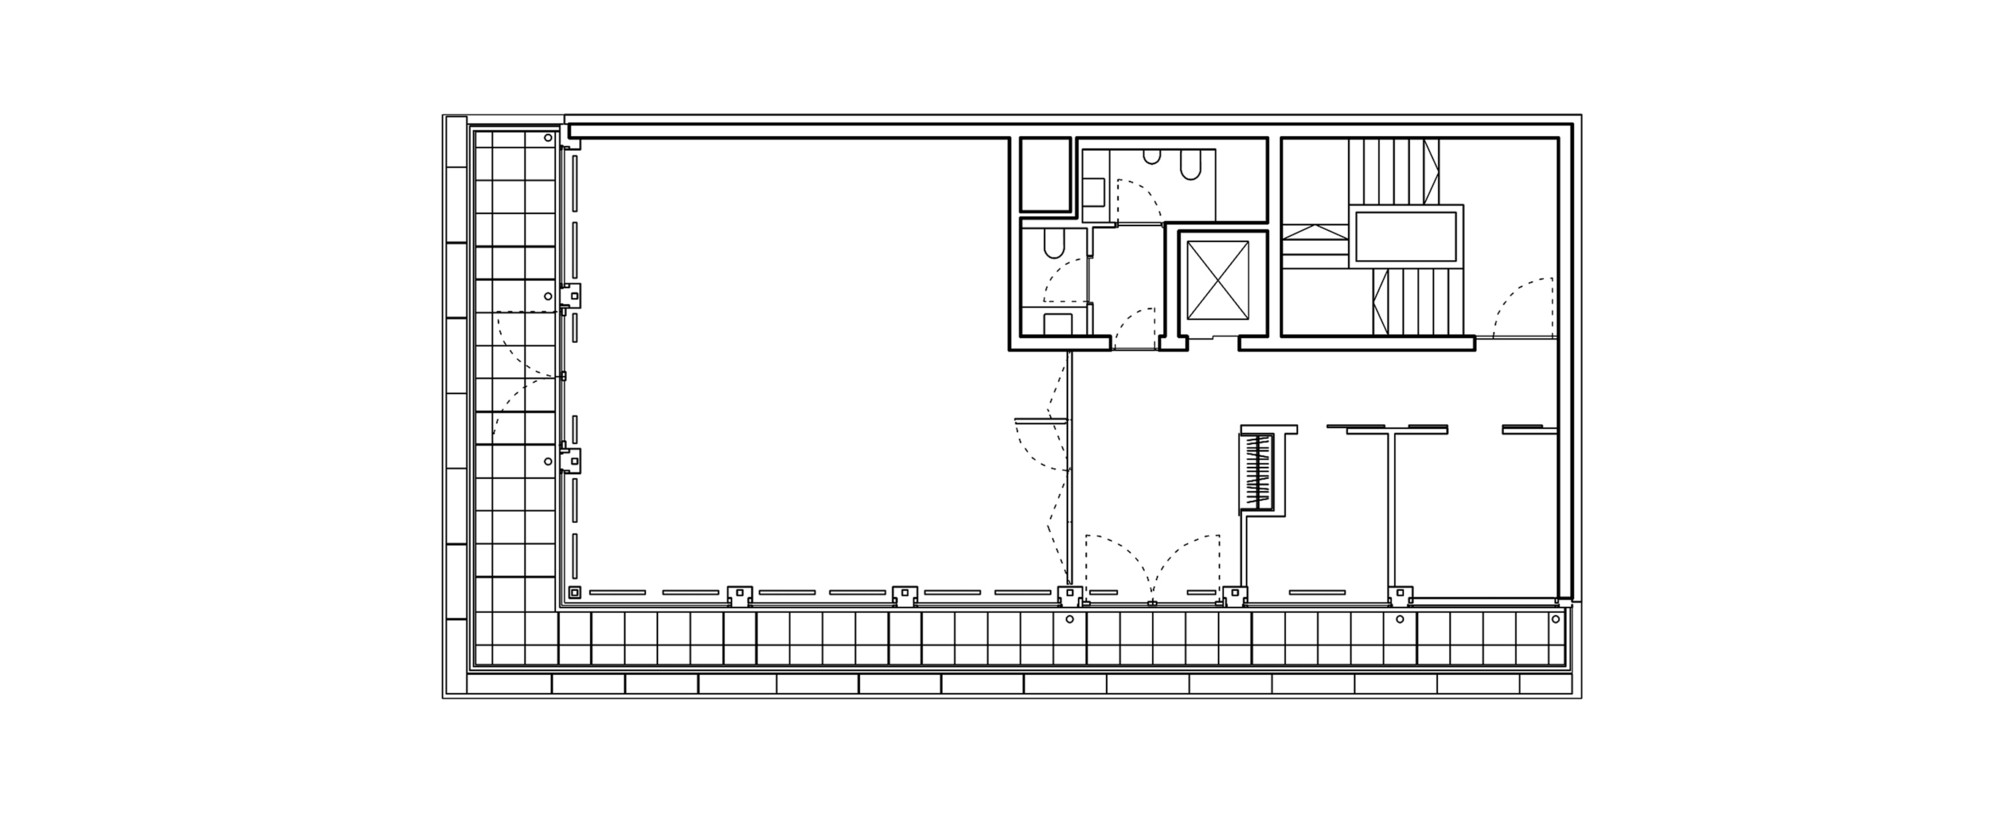 Psd bank office buildingthird floor plan